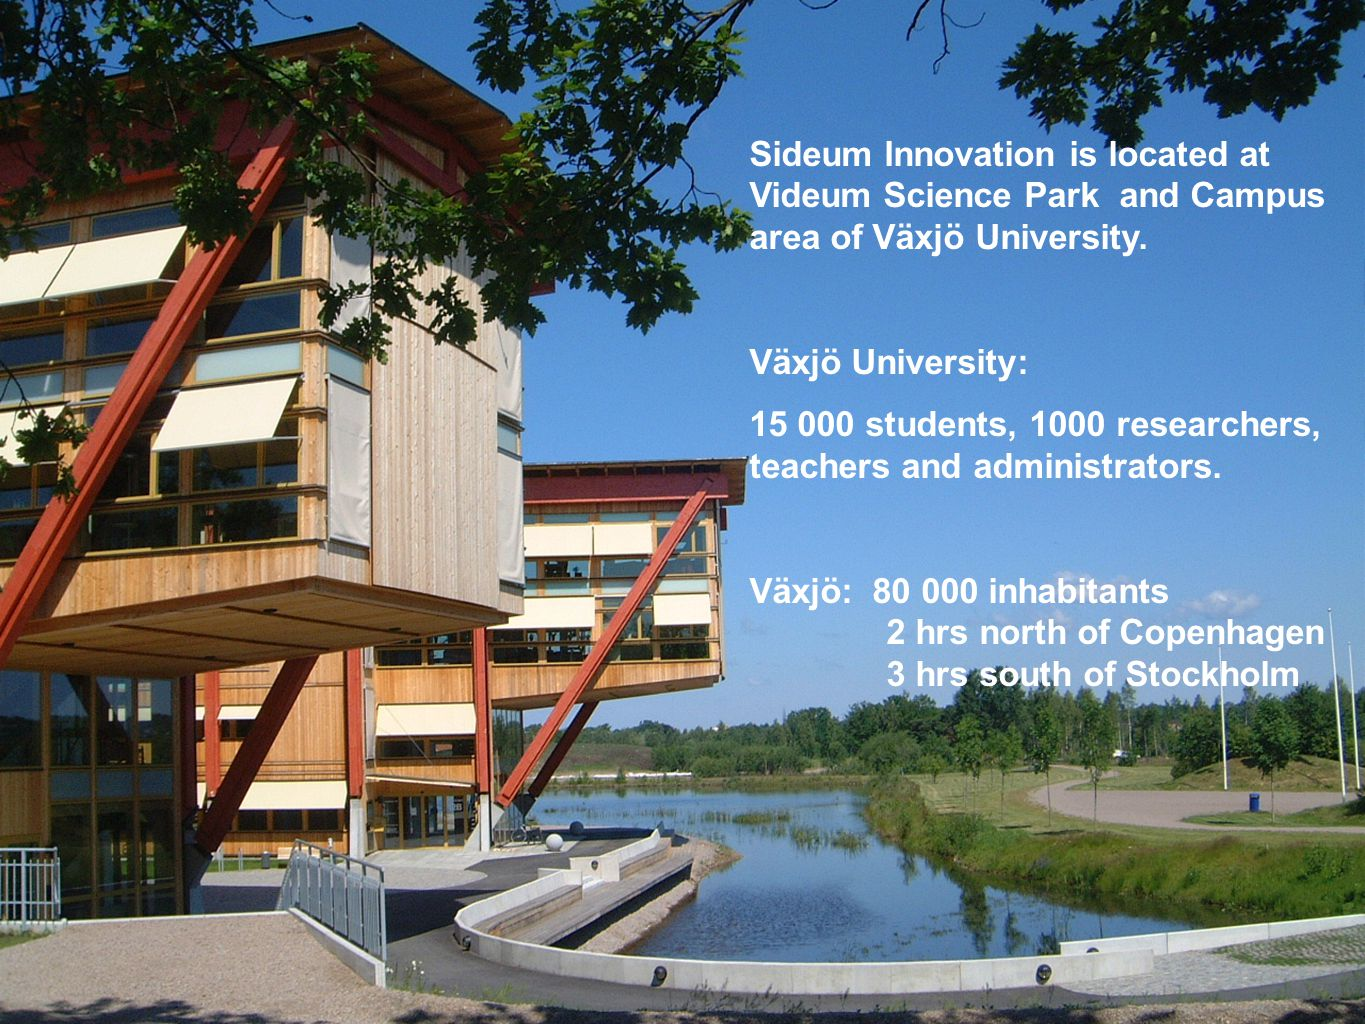 Sideum Innovation is located at Videum Science Park and Campus area of Växjö University.